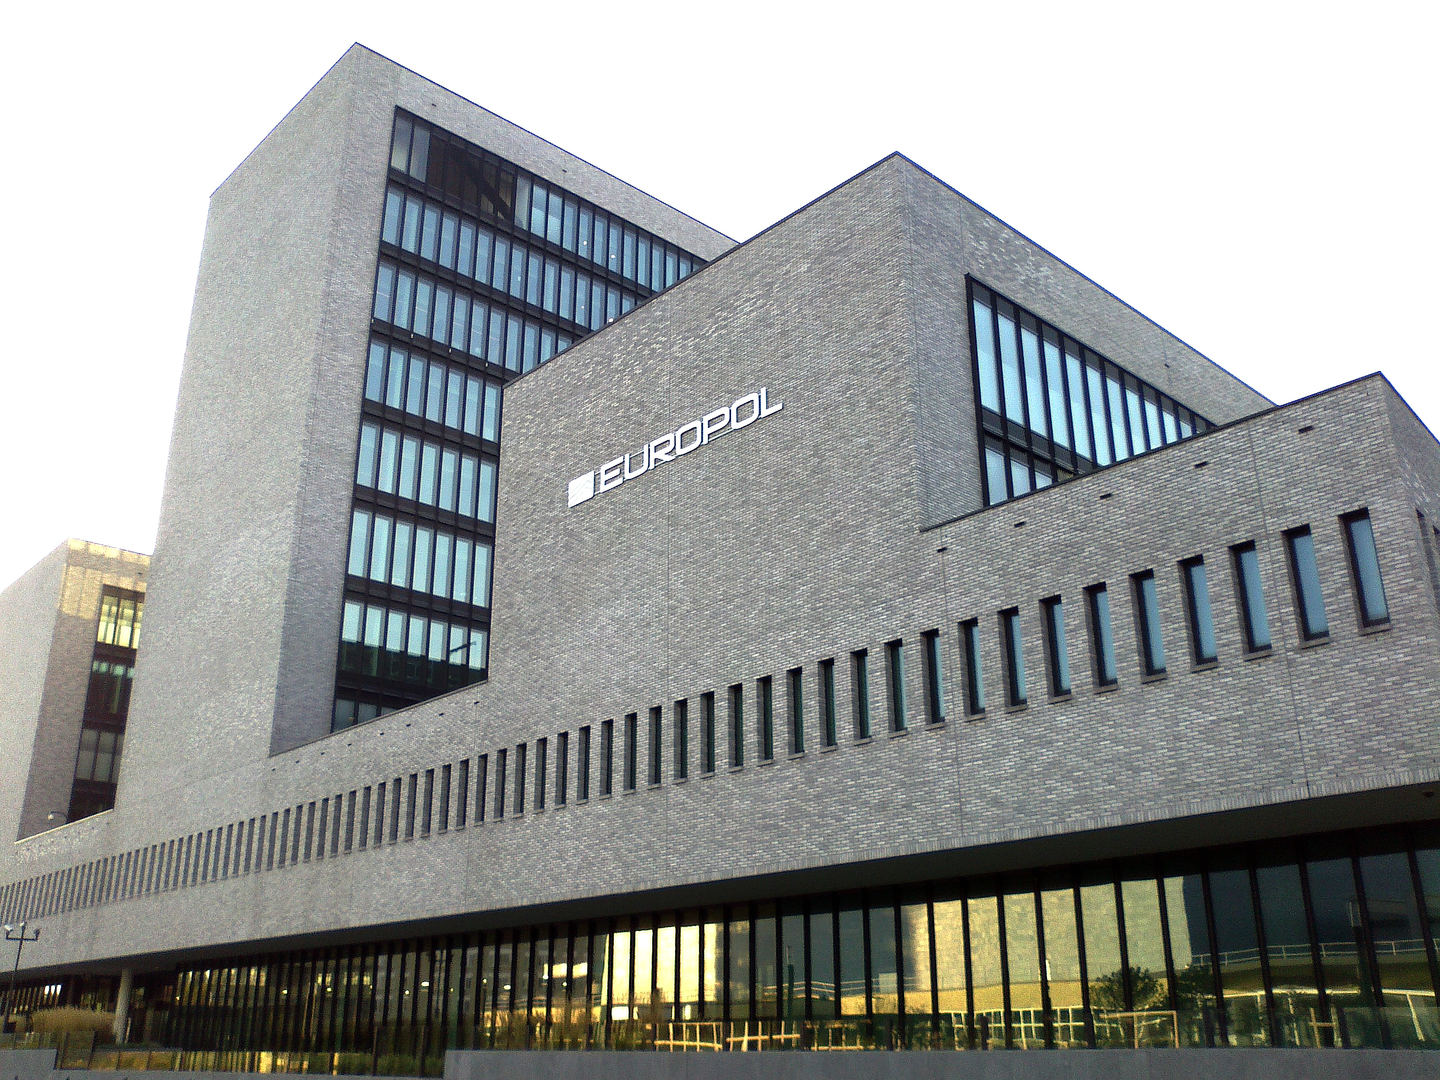 File:Europol building, The Hague, the Netherlands - 931.jpg